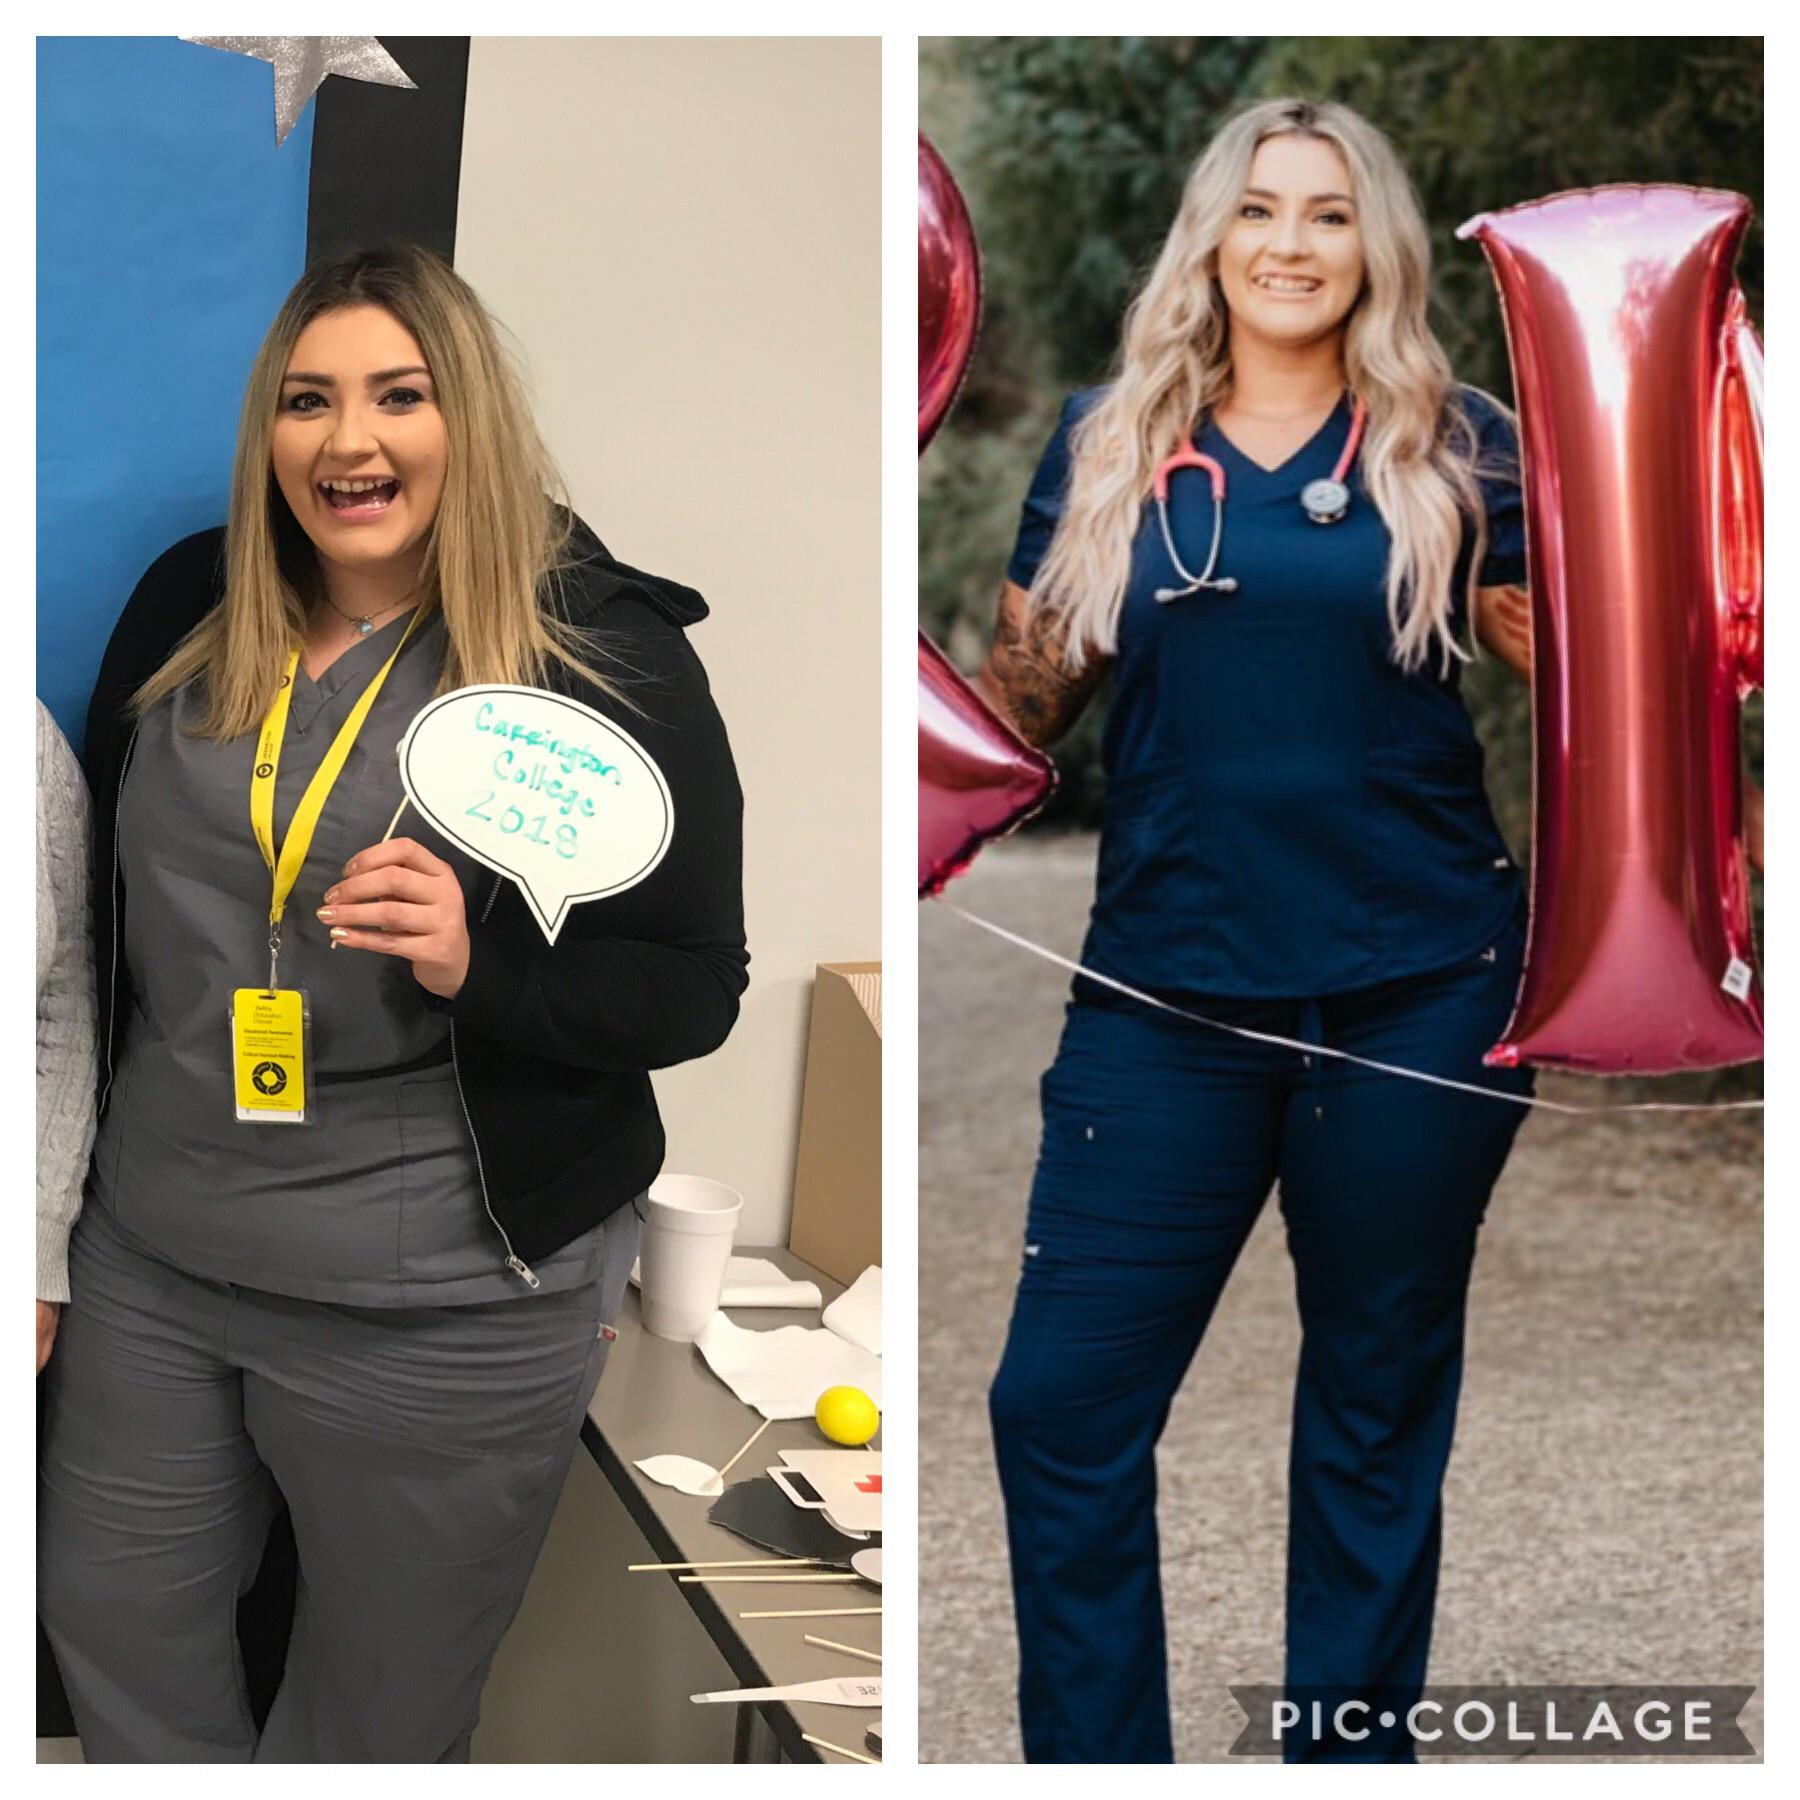 70 lbs Weight Loss Before and After 5 foot 8 Female 275 lbs to 205 lbs